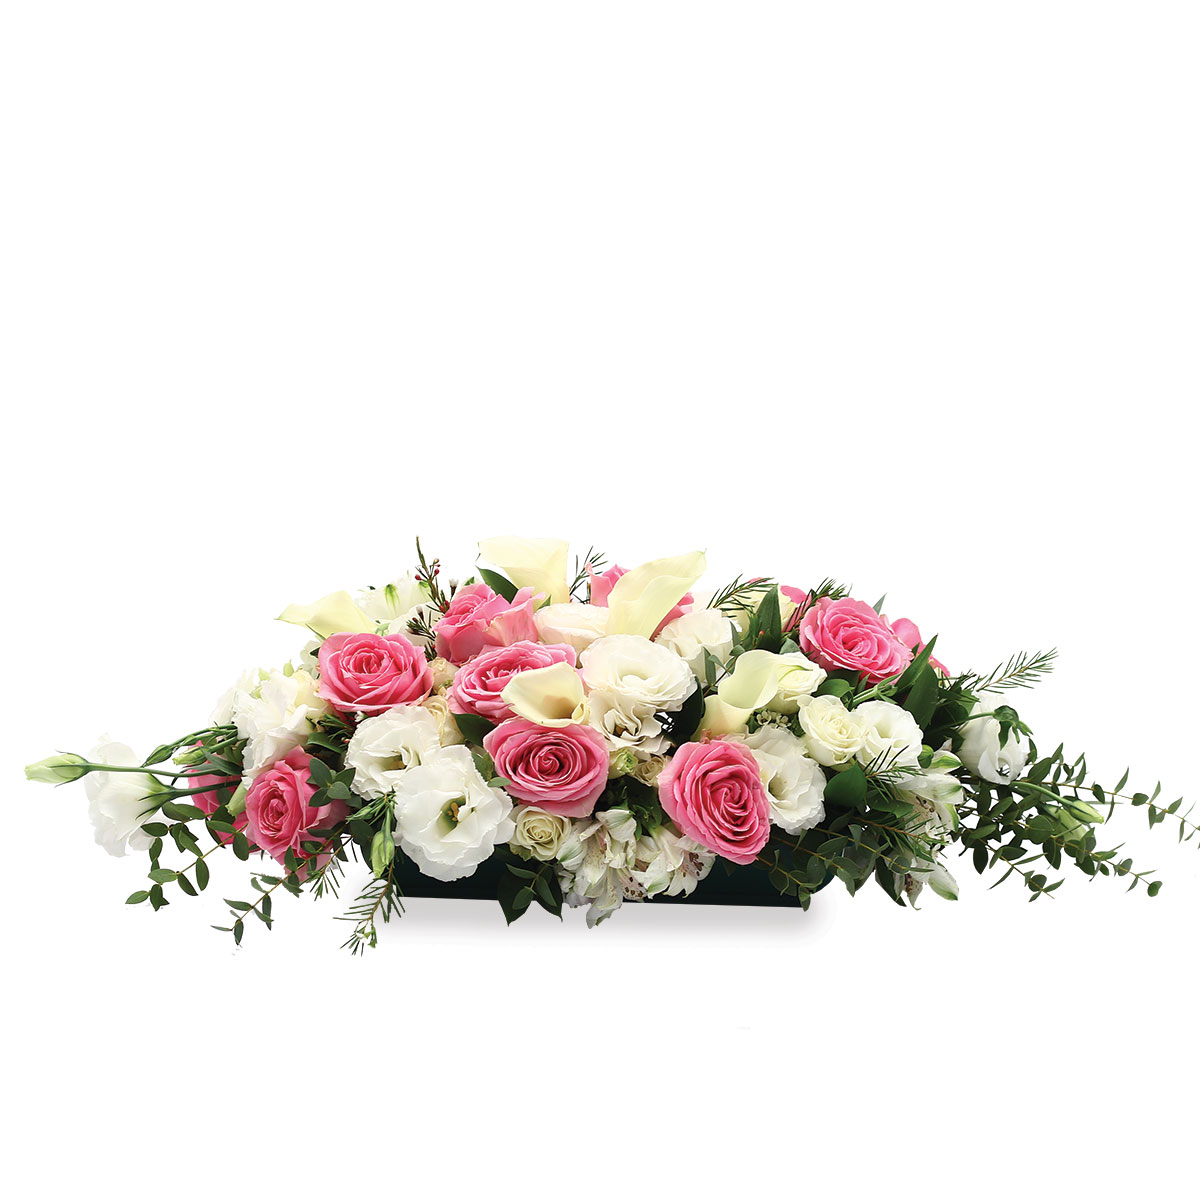 WD1705 Everlasting Devotion White Calla lilies and Dark Pink Kenya Roses